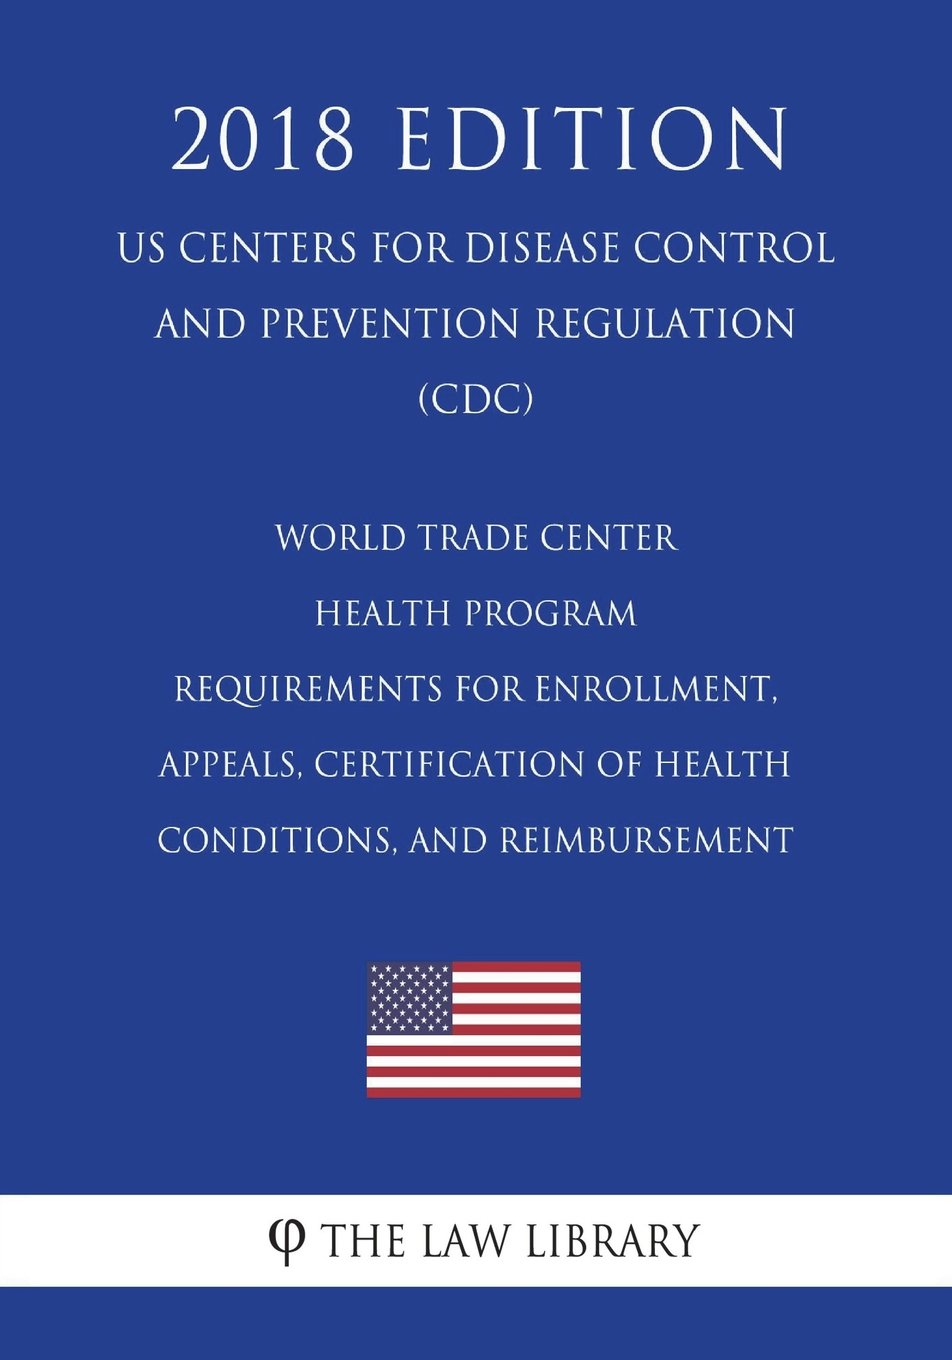 World Trade Center Health Program - Requirements for Enrollment, Appeals, Certification of Health Conditions, and Reimbursement (US Centers for ... Prevention Regulation) (CDC) (2018 Edition) pdf